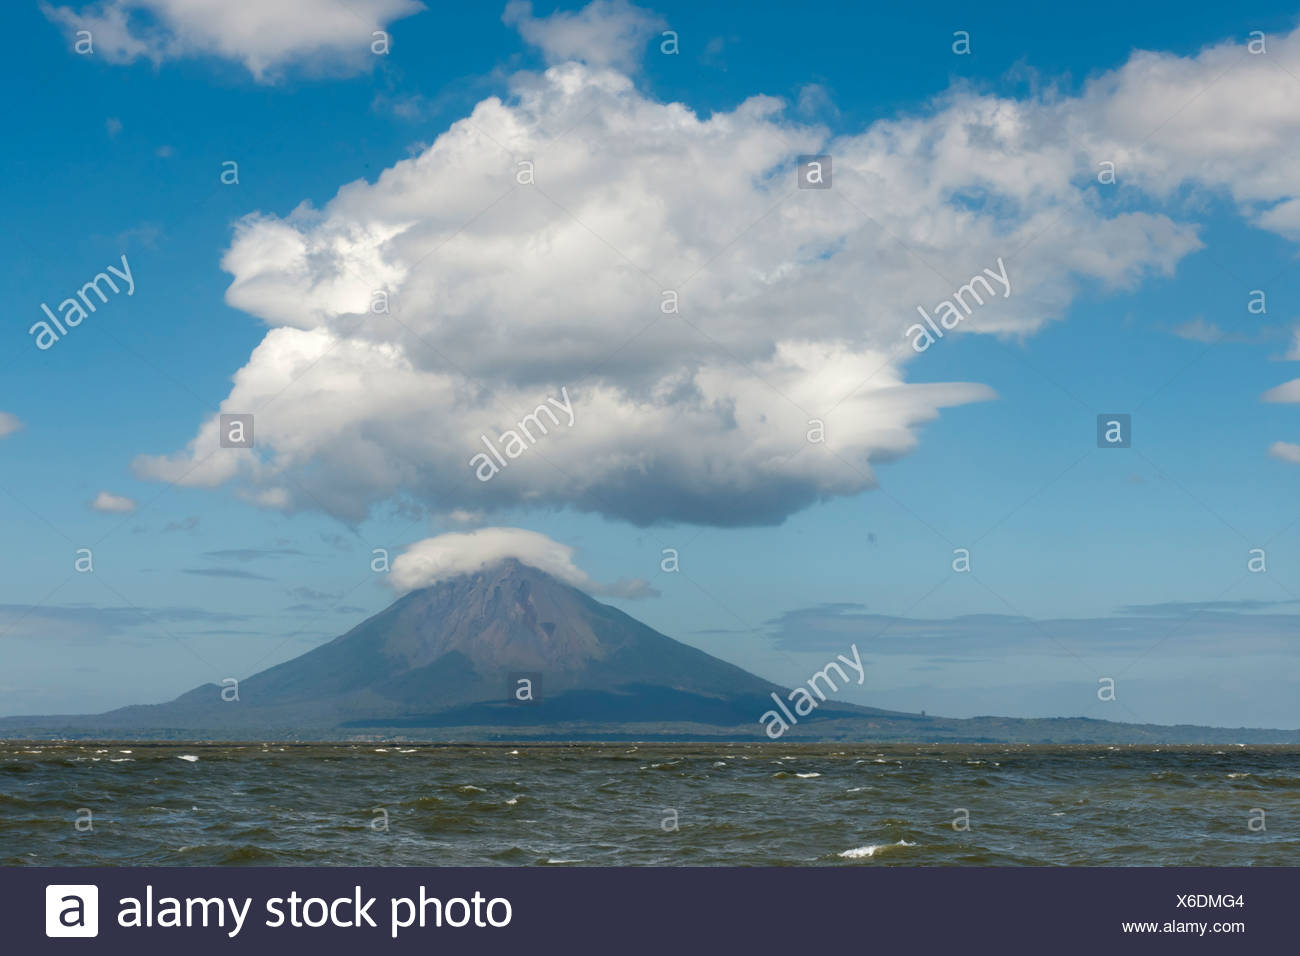 Volcanic island of Ometepe and the stratovolcano Volcán Concepción, 1610m in Lago de Nicaragua, Nicaragua, Central America Stock Photo